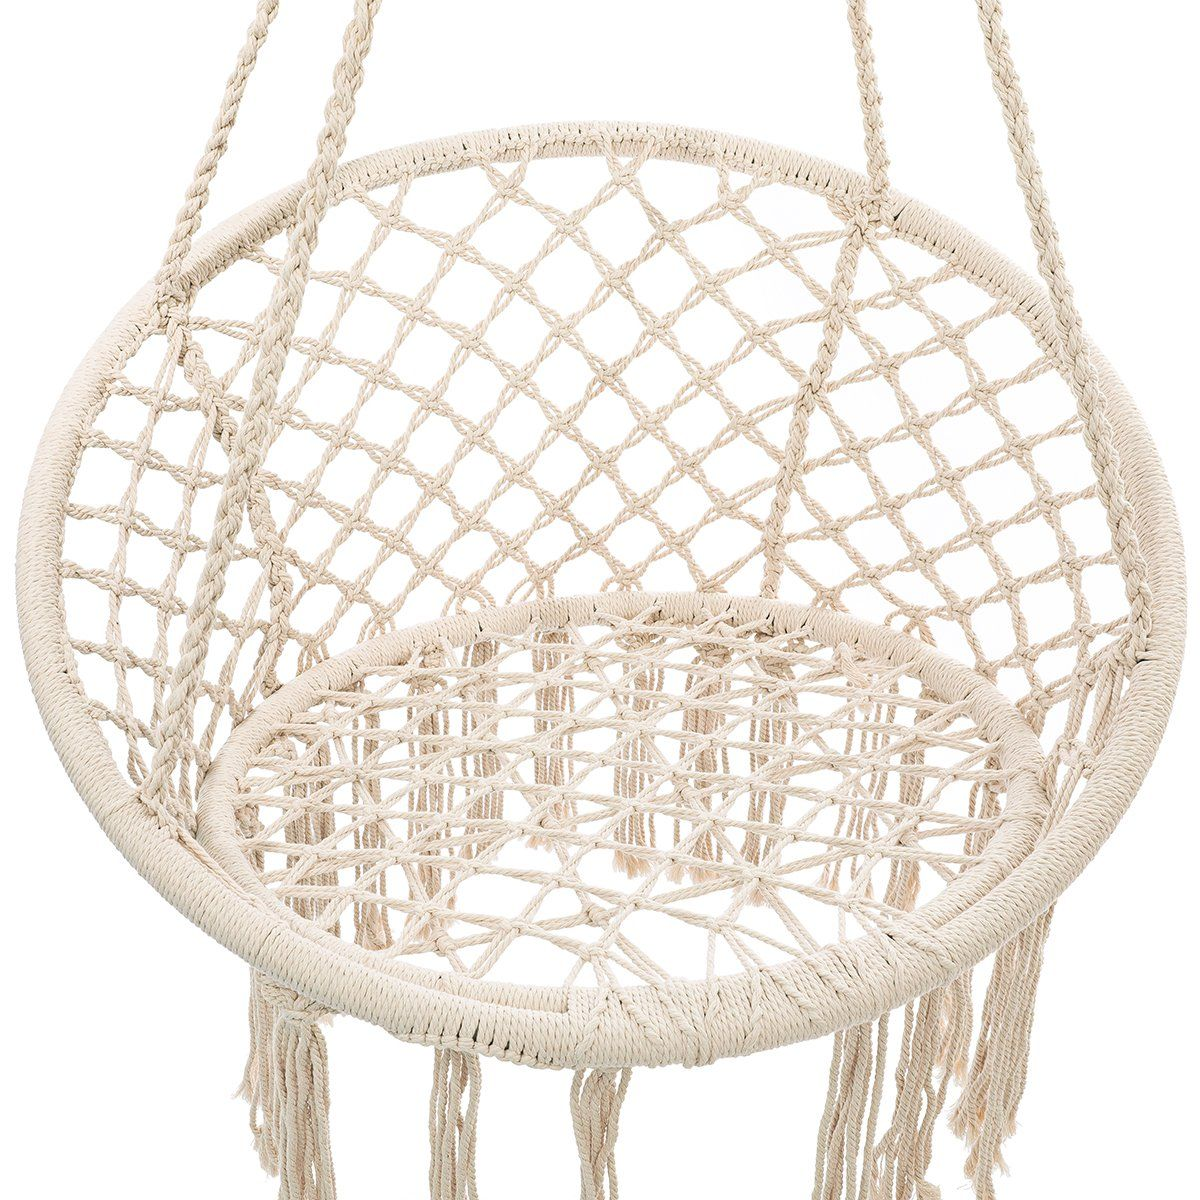 Hammock Chair Macrame Swing, Room Decor Handmade Knitted